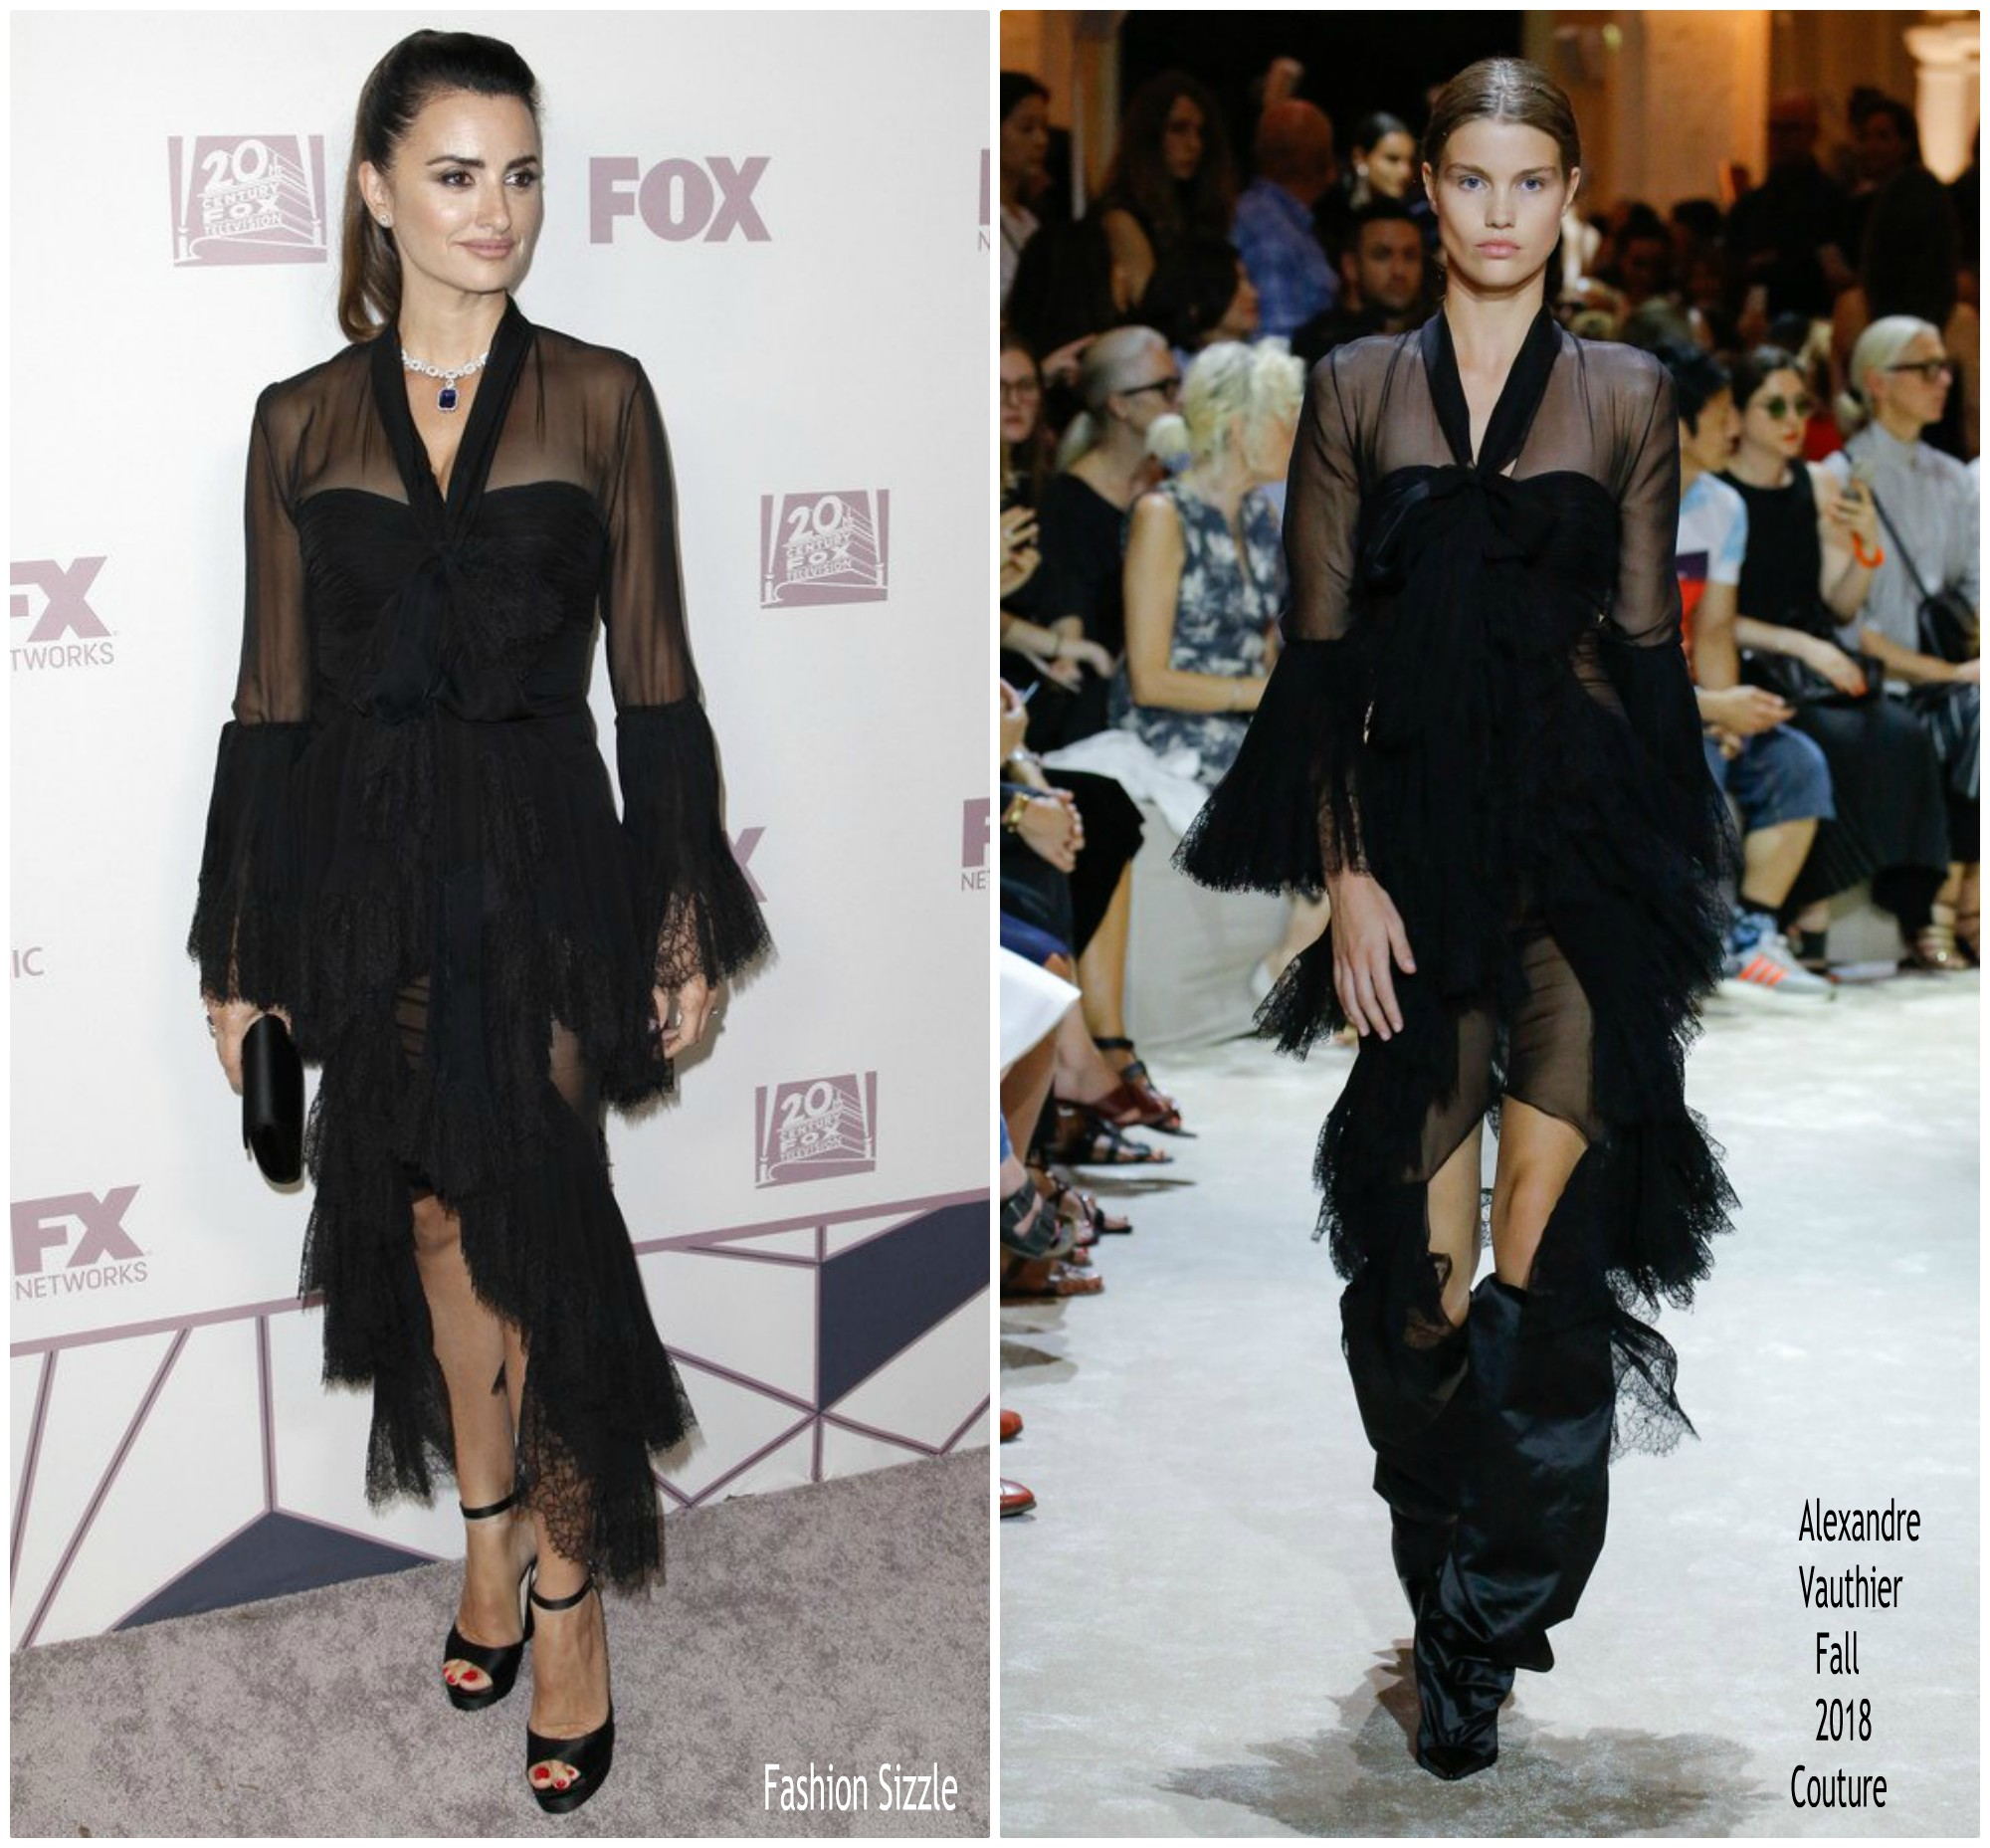 penelope-cruz-in-alexandre-vauthier-couture-fox-fx-emmys-2018-nominees